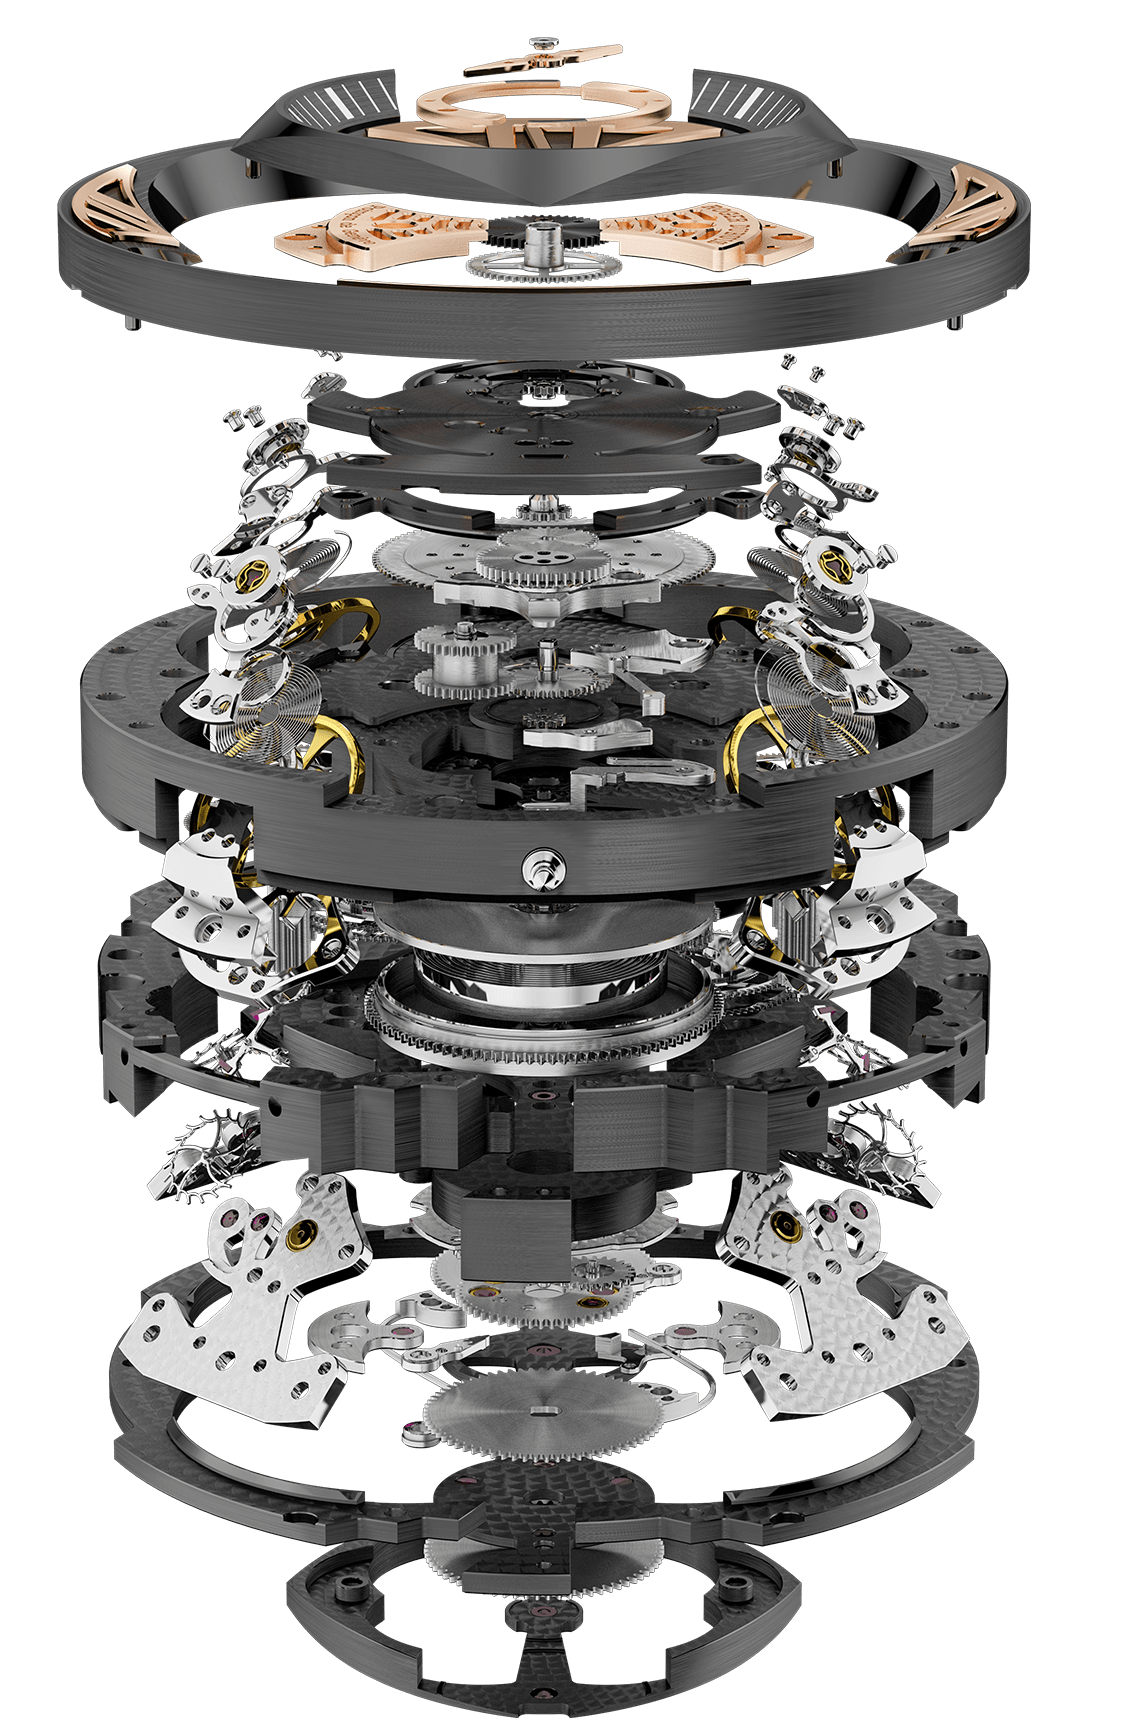 The RD101 caliber consists of 590 parts.